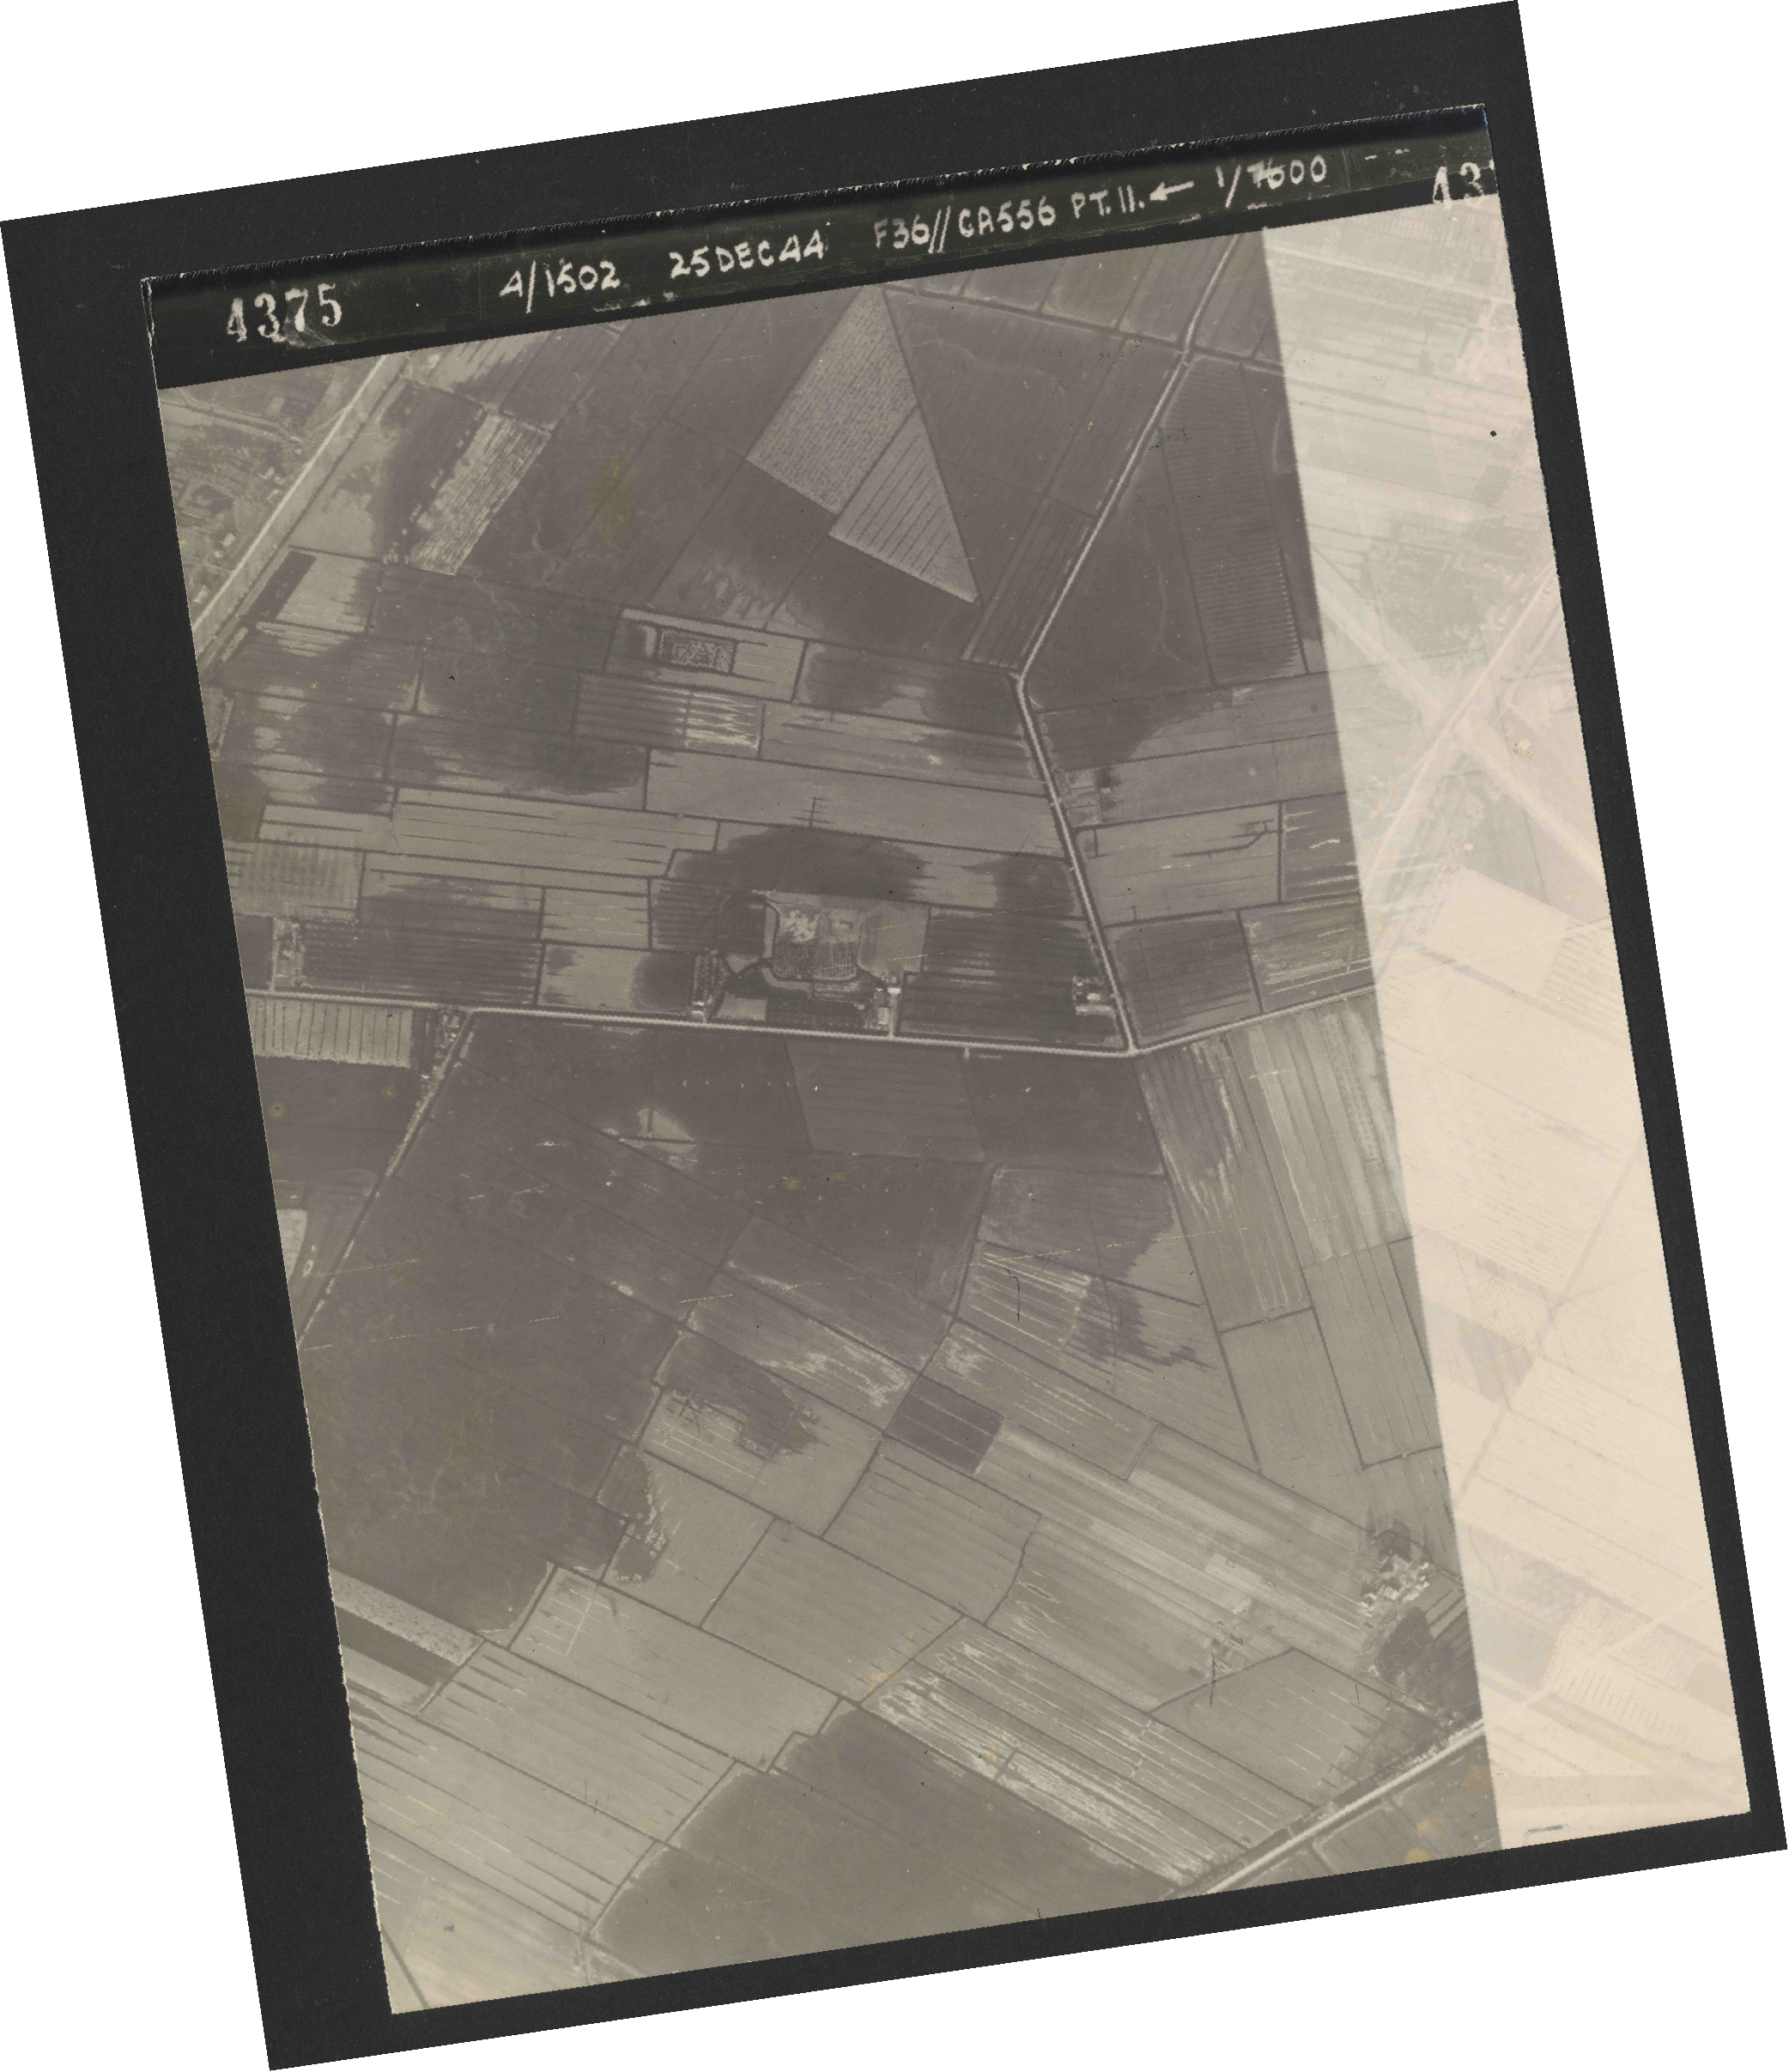 Collection RAF aerial photos 1940-1945 - flight 306, run 11, photo 4375